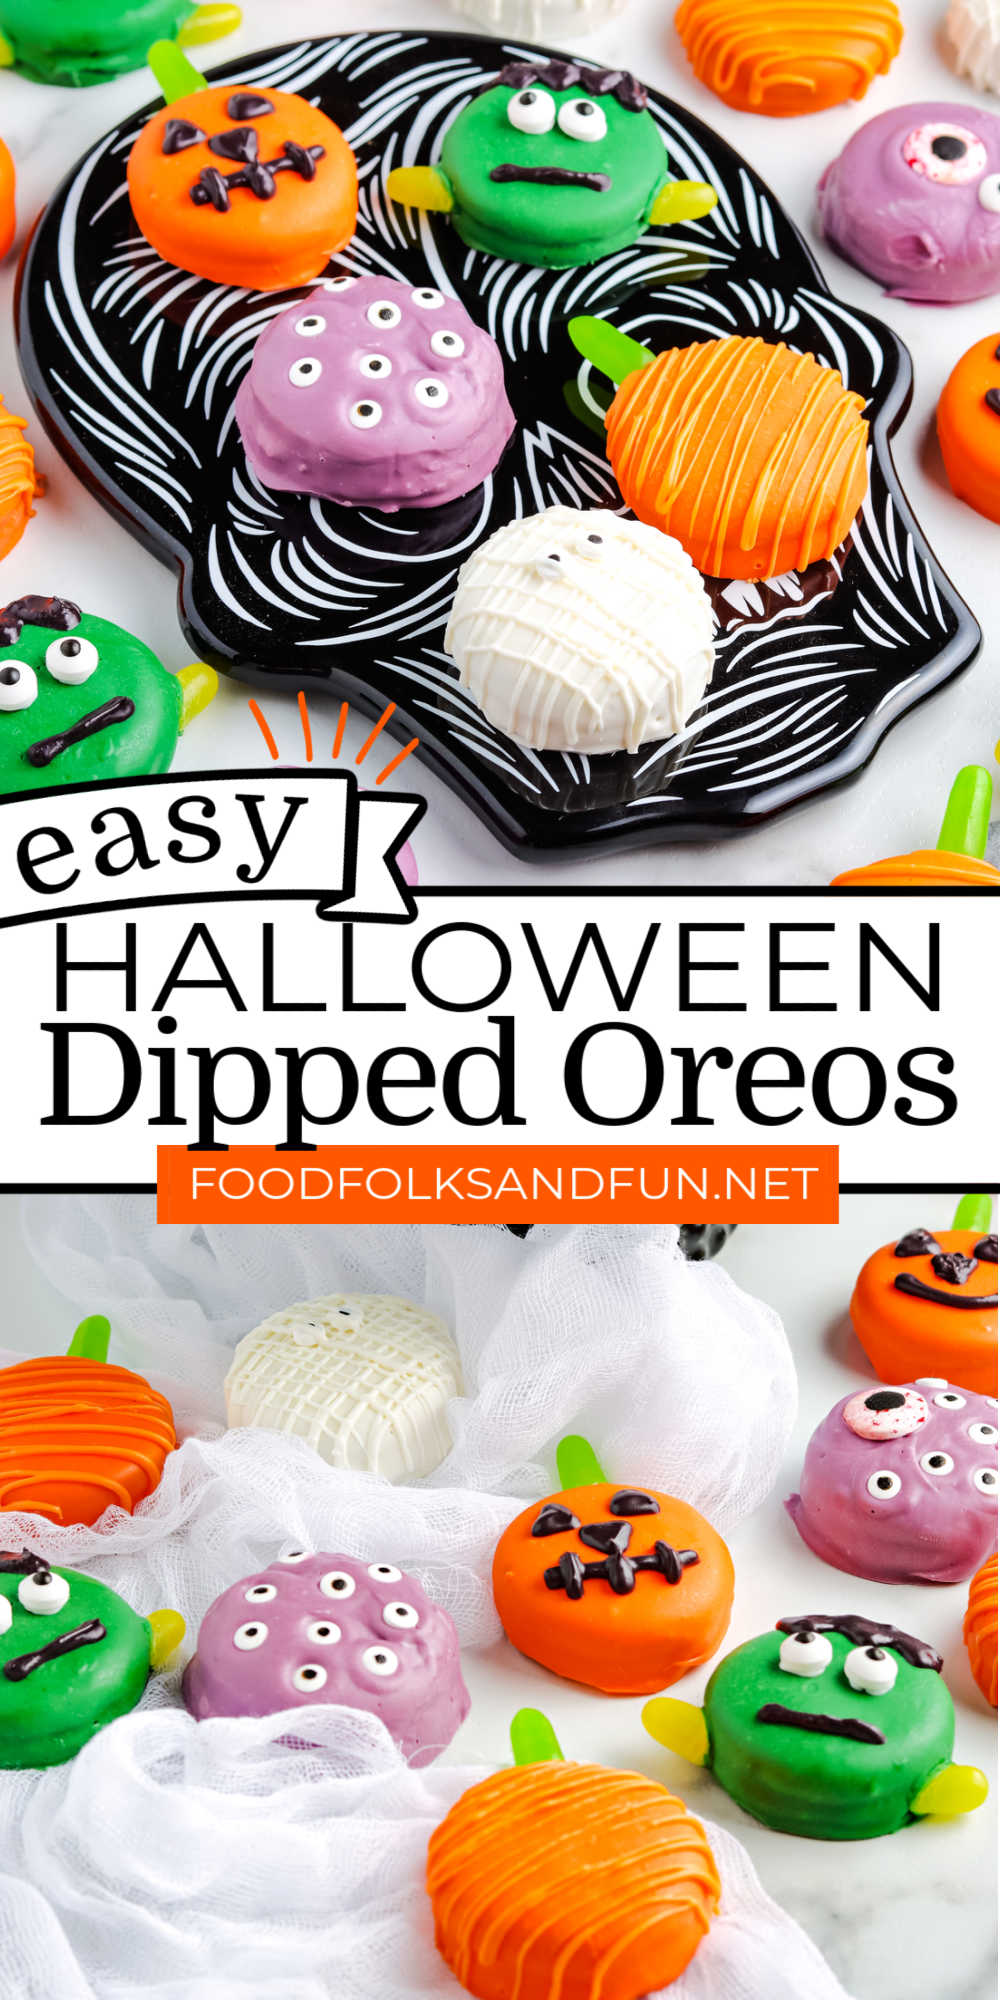 These Halloween Chocolate Dipped Oreos are easy and delicious. Grab the kids because they are going to love making this fun Halloween treat! via @foodfolksandfun